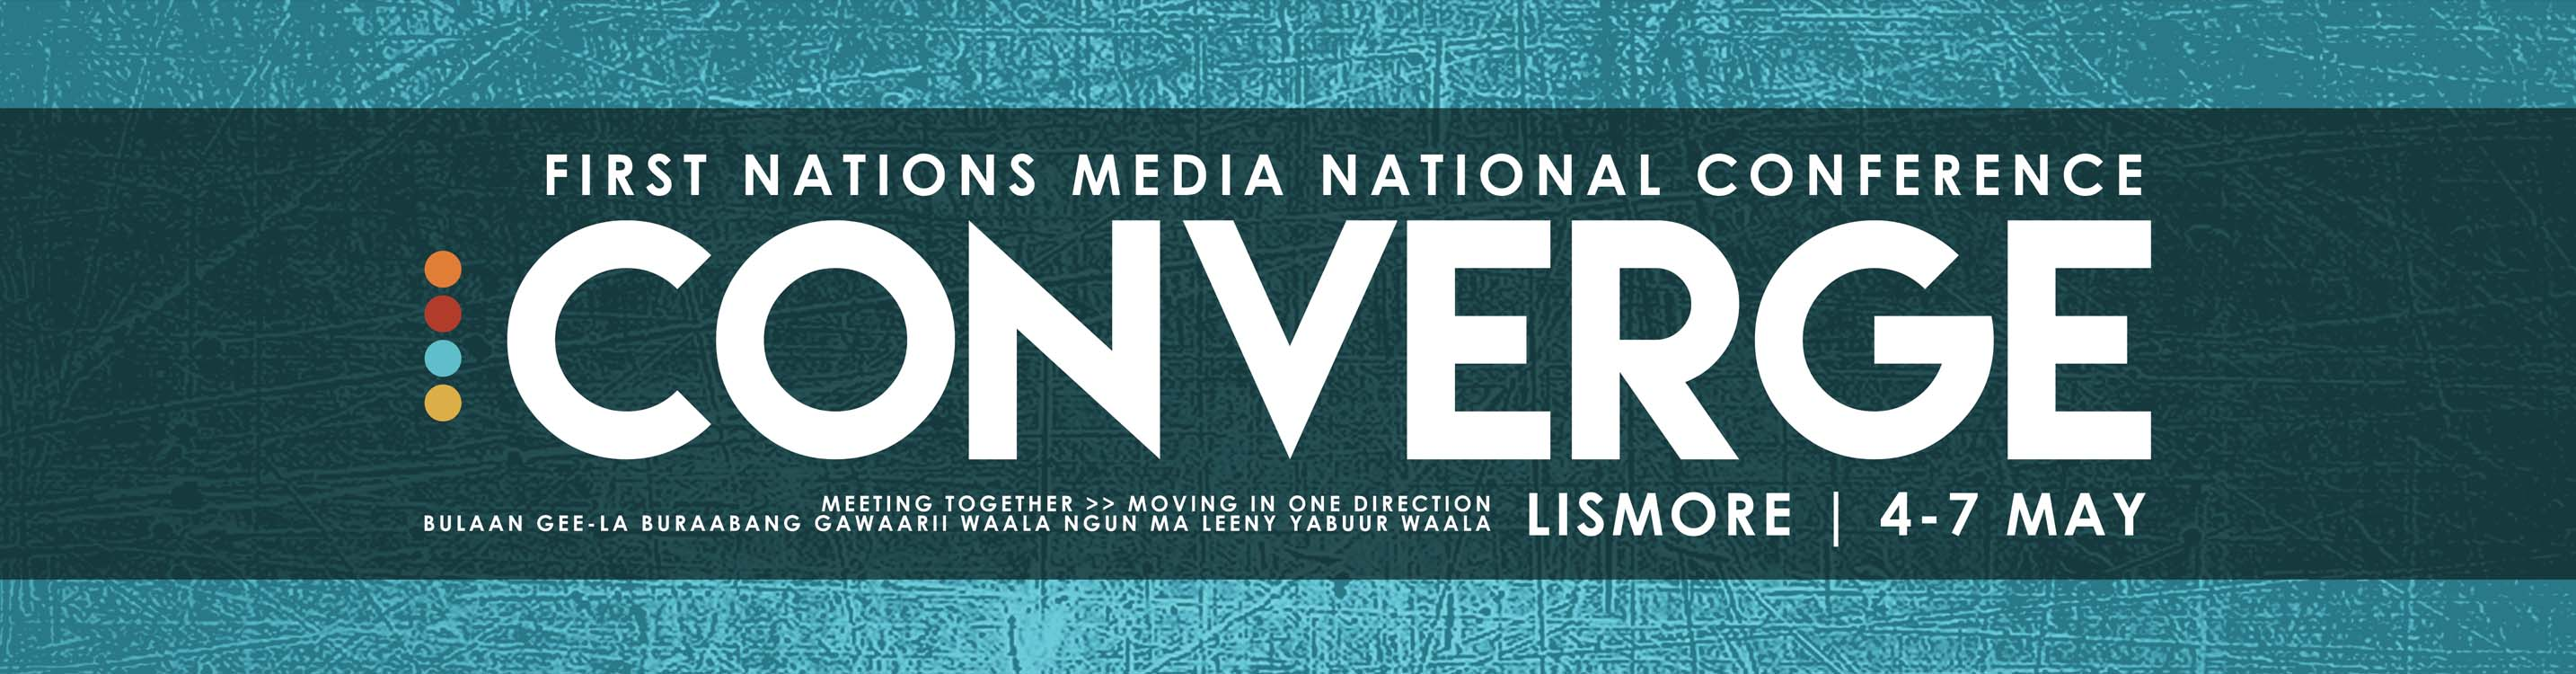 First Nations Media Converge Banner